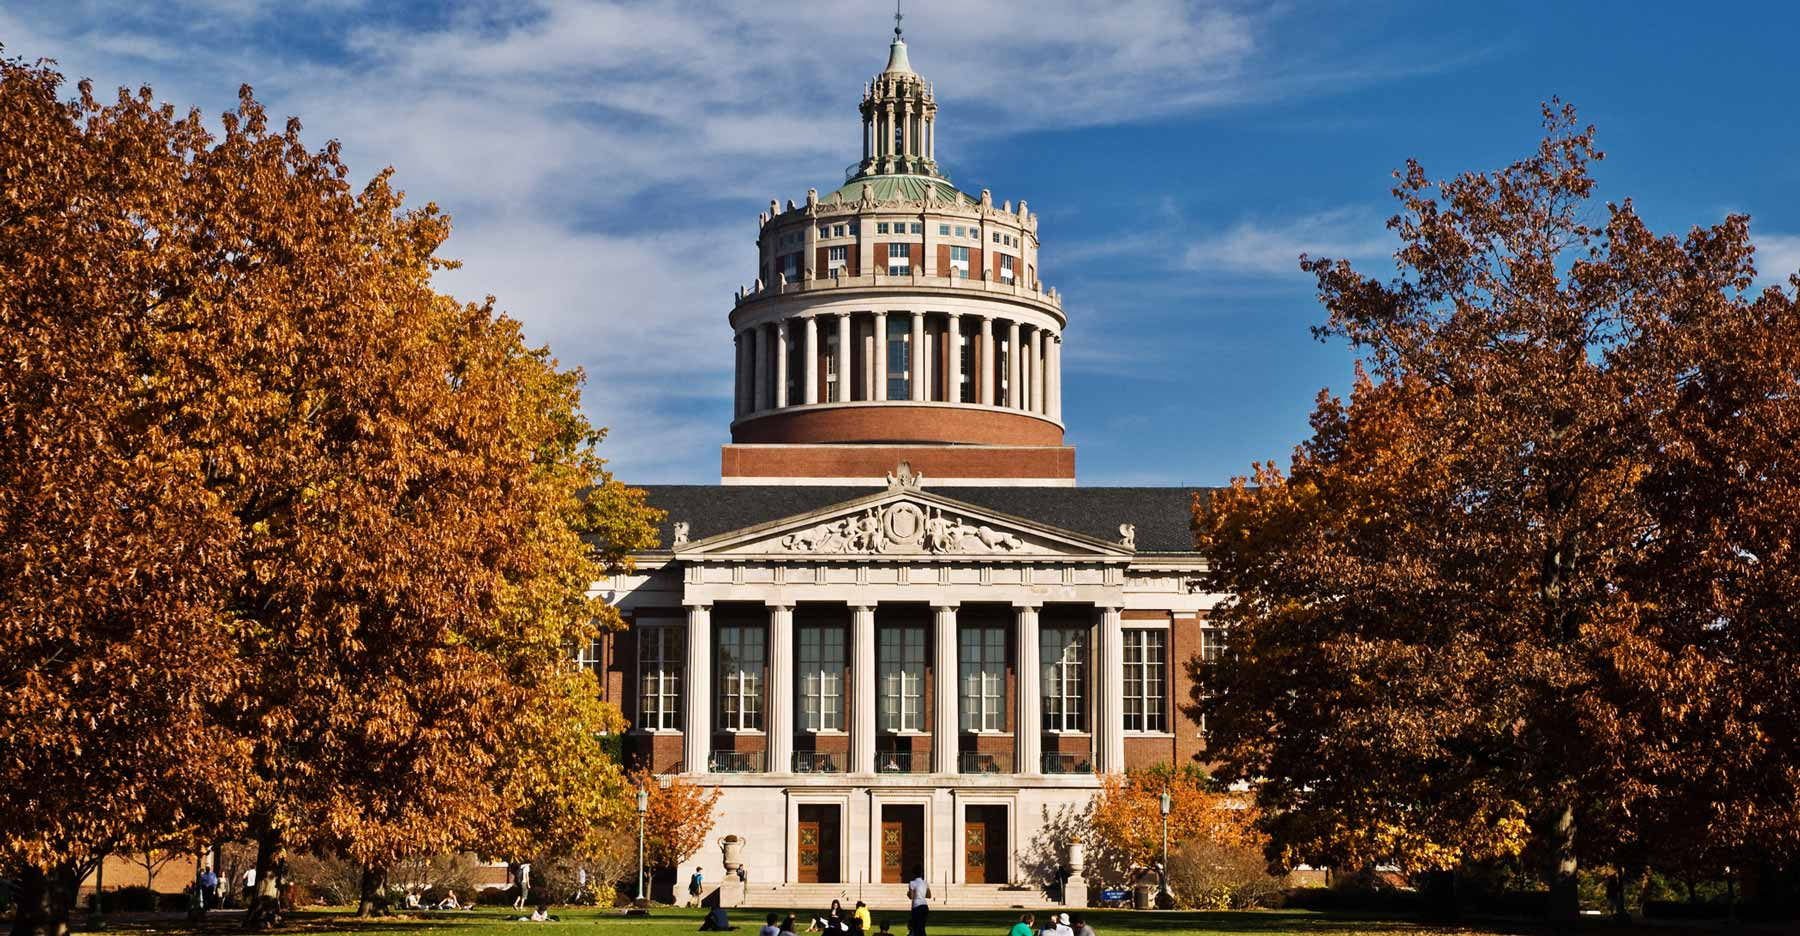 University of Rochester Best Nursing Degrees